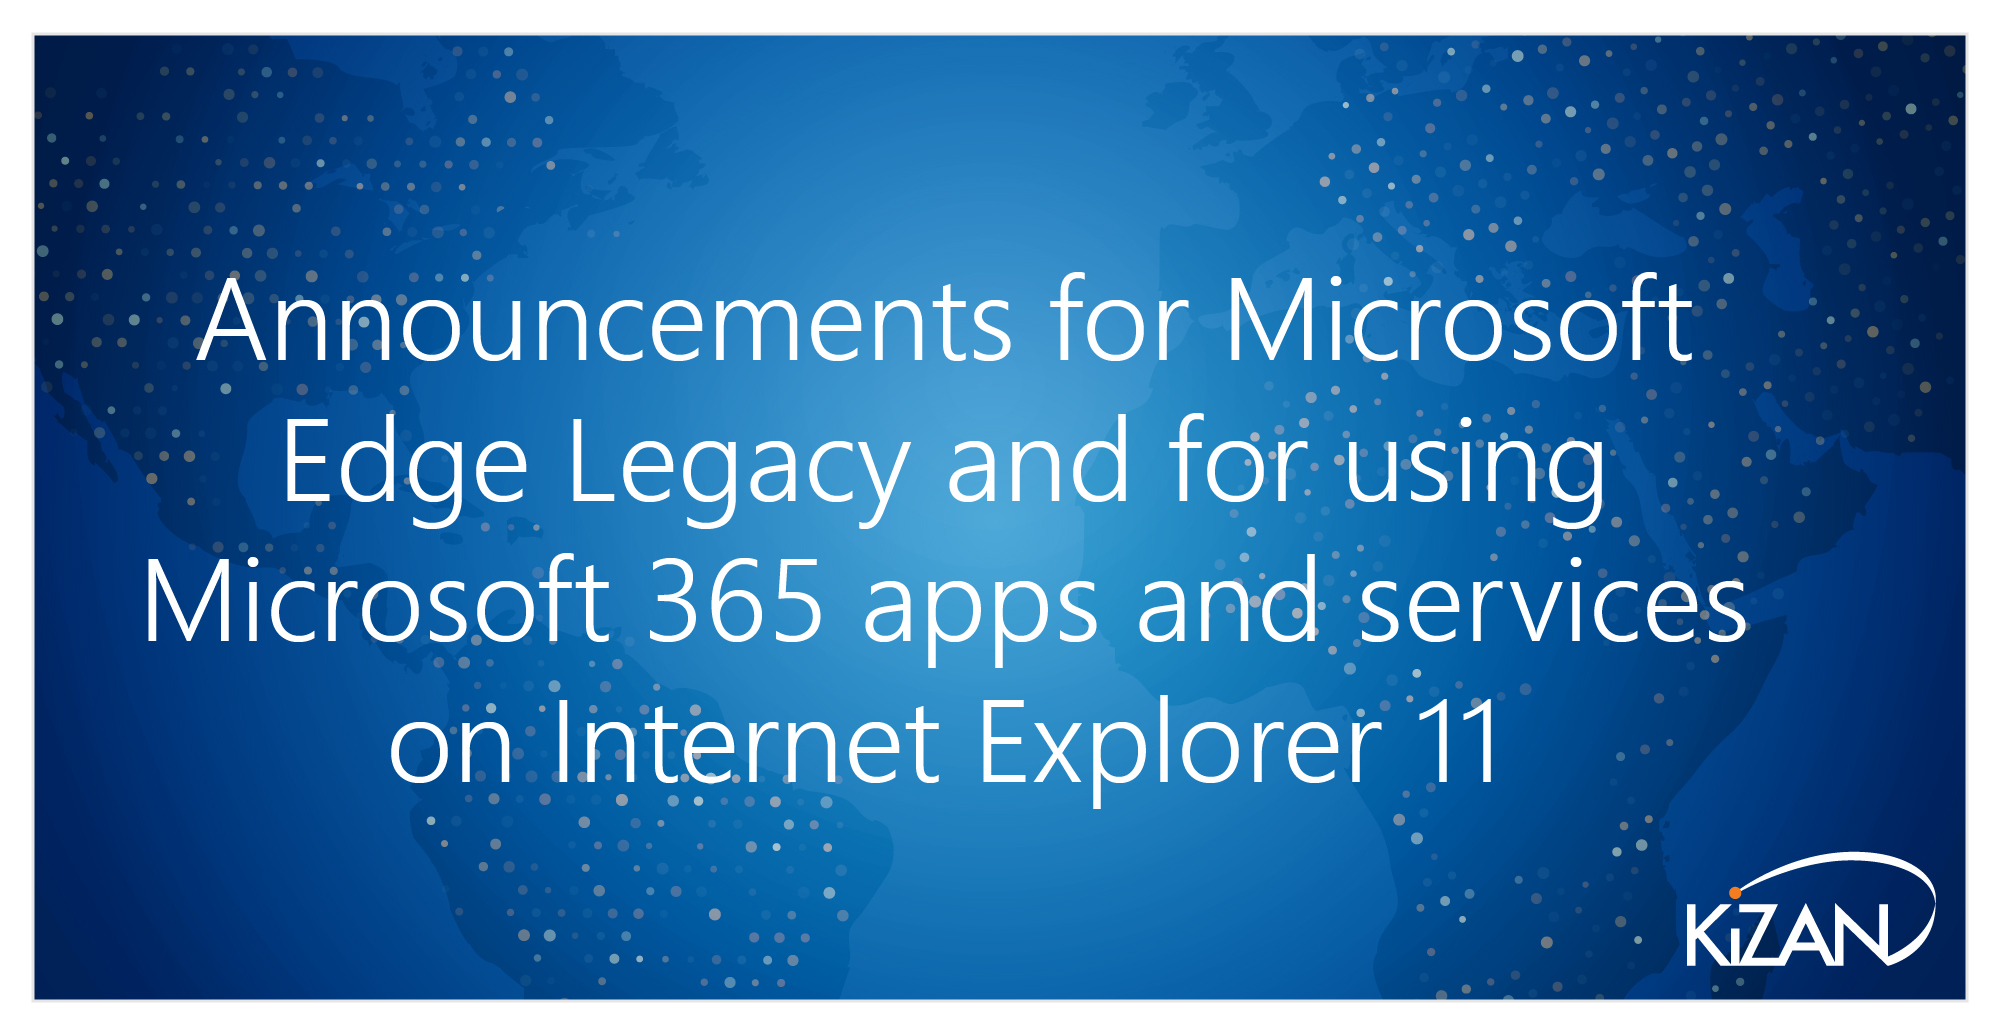 In order to provide the best experience for customers, Microsoft will be focusing efforts on modern browser support over the coming year.